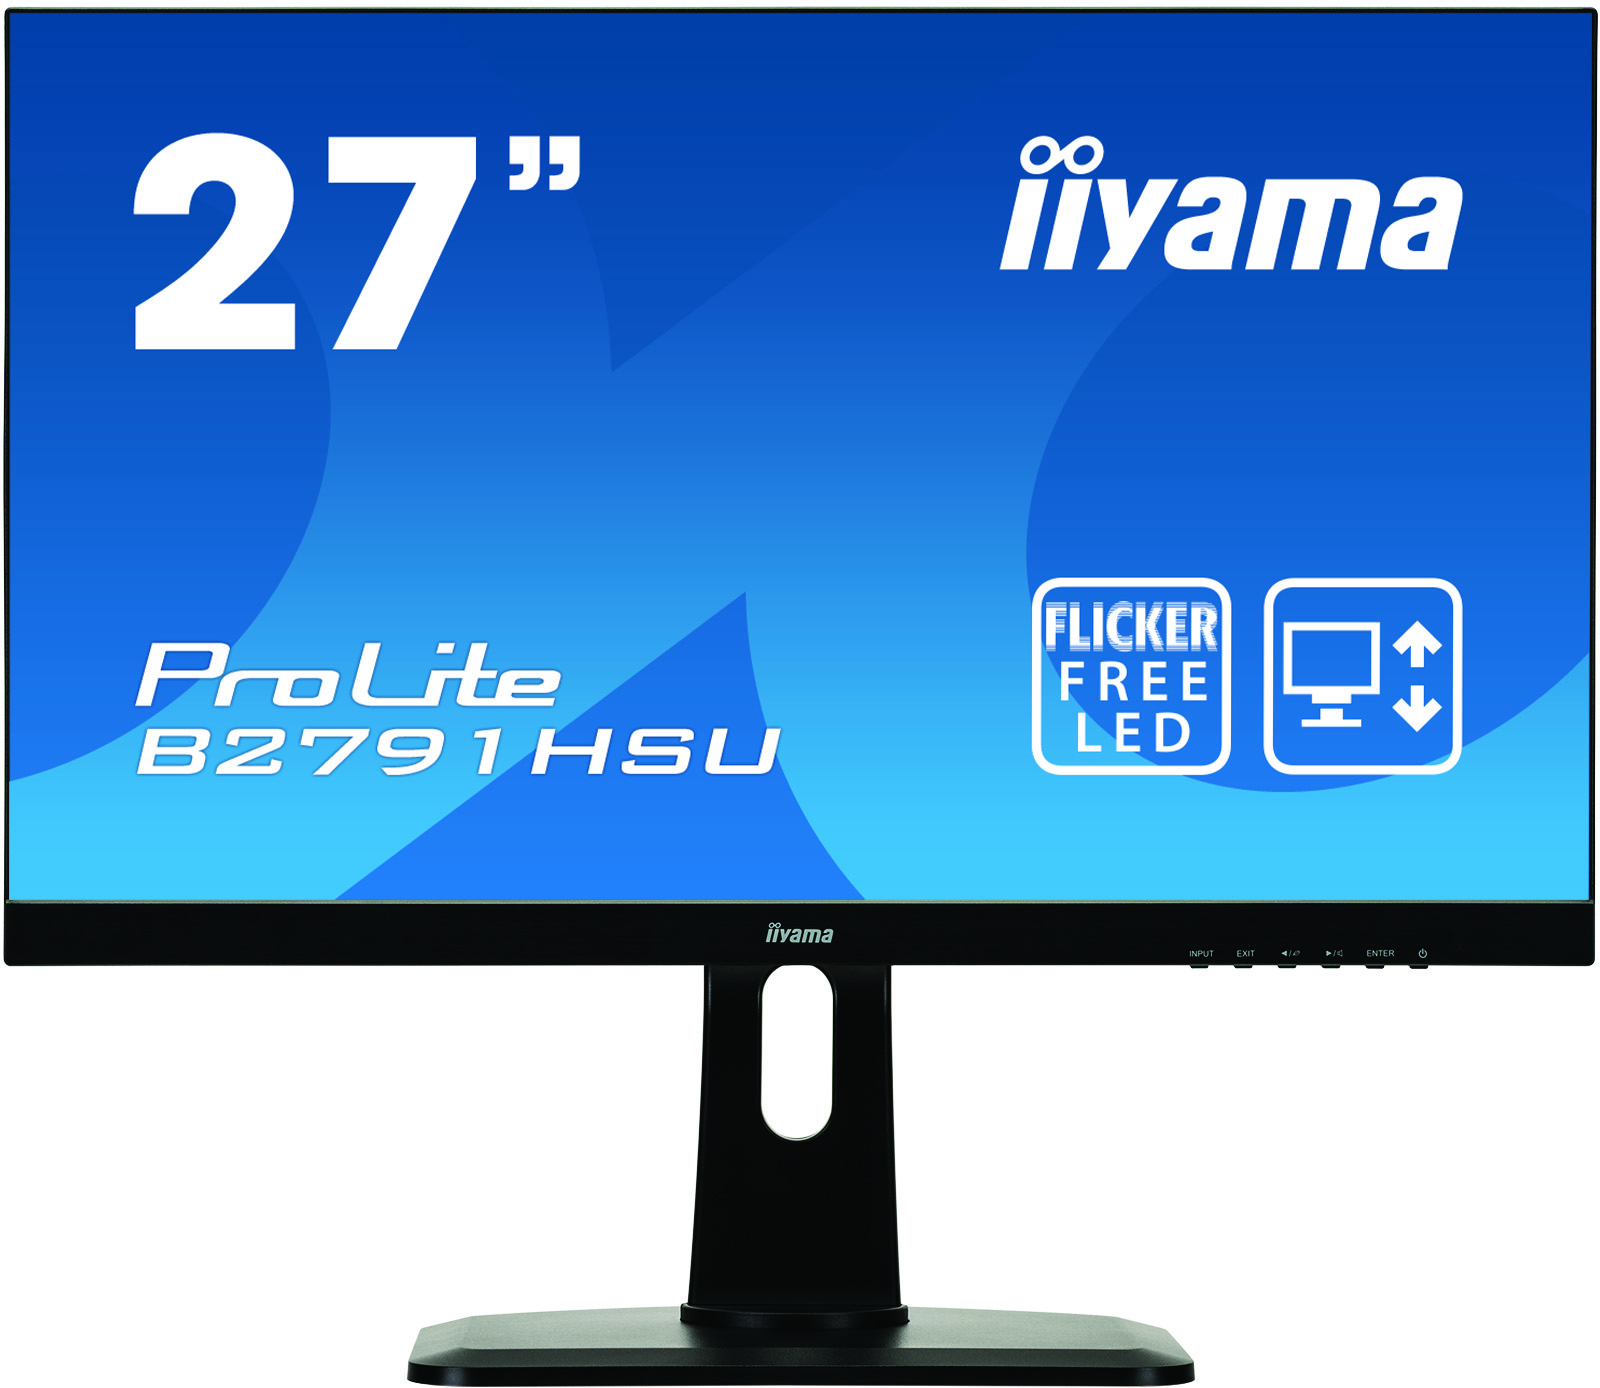 27in Monitor HD Speakers VGA HDMI